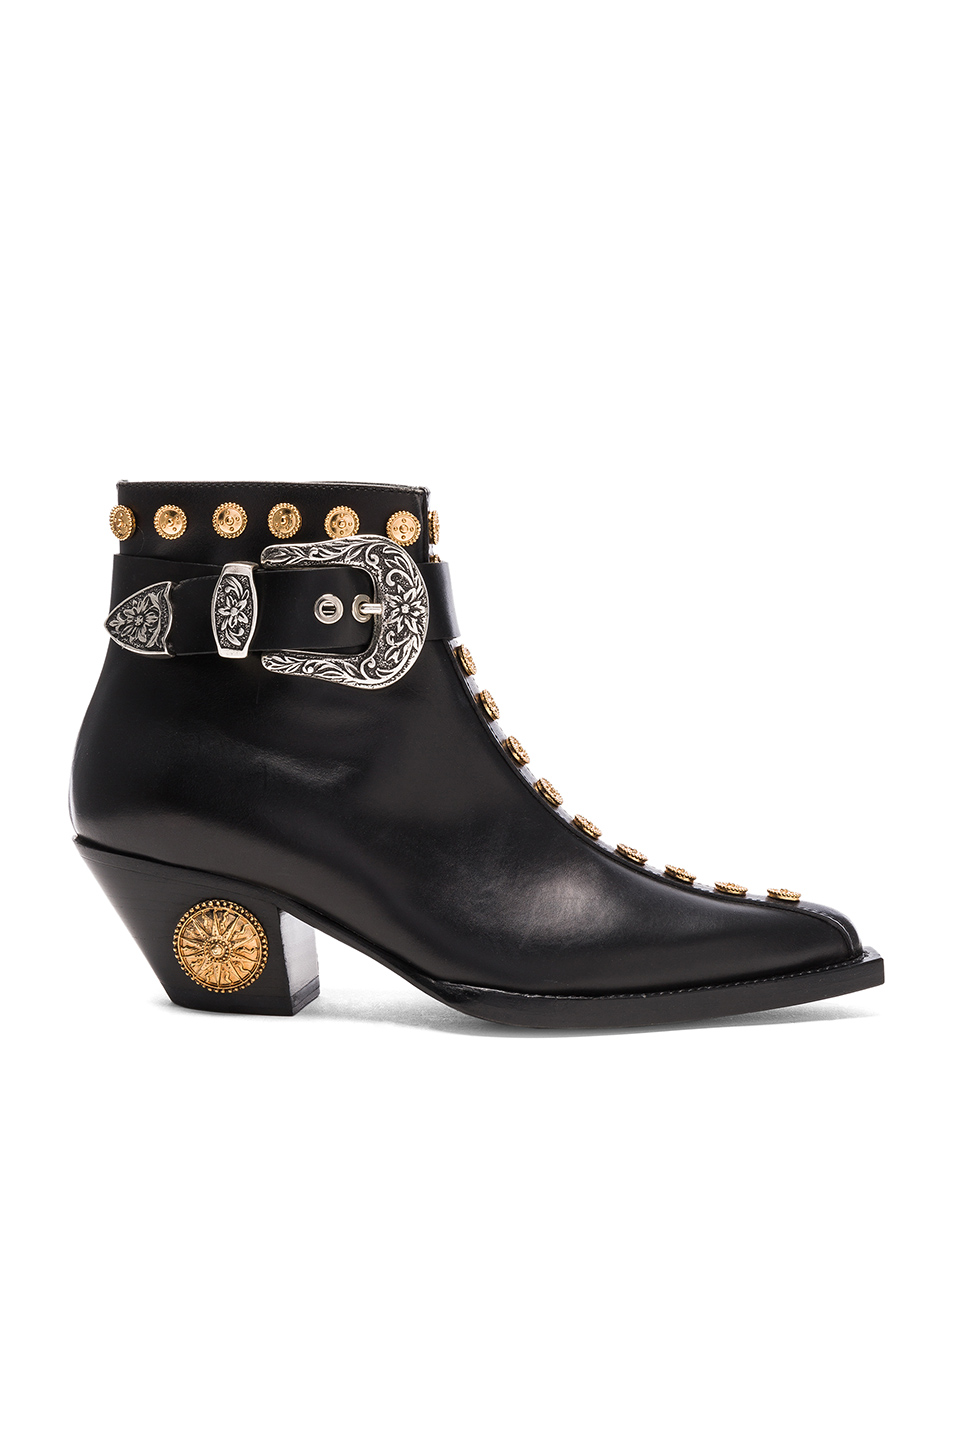 Fausto Puglisi Studded Leather Booties in Black